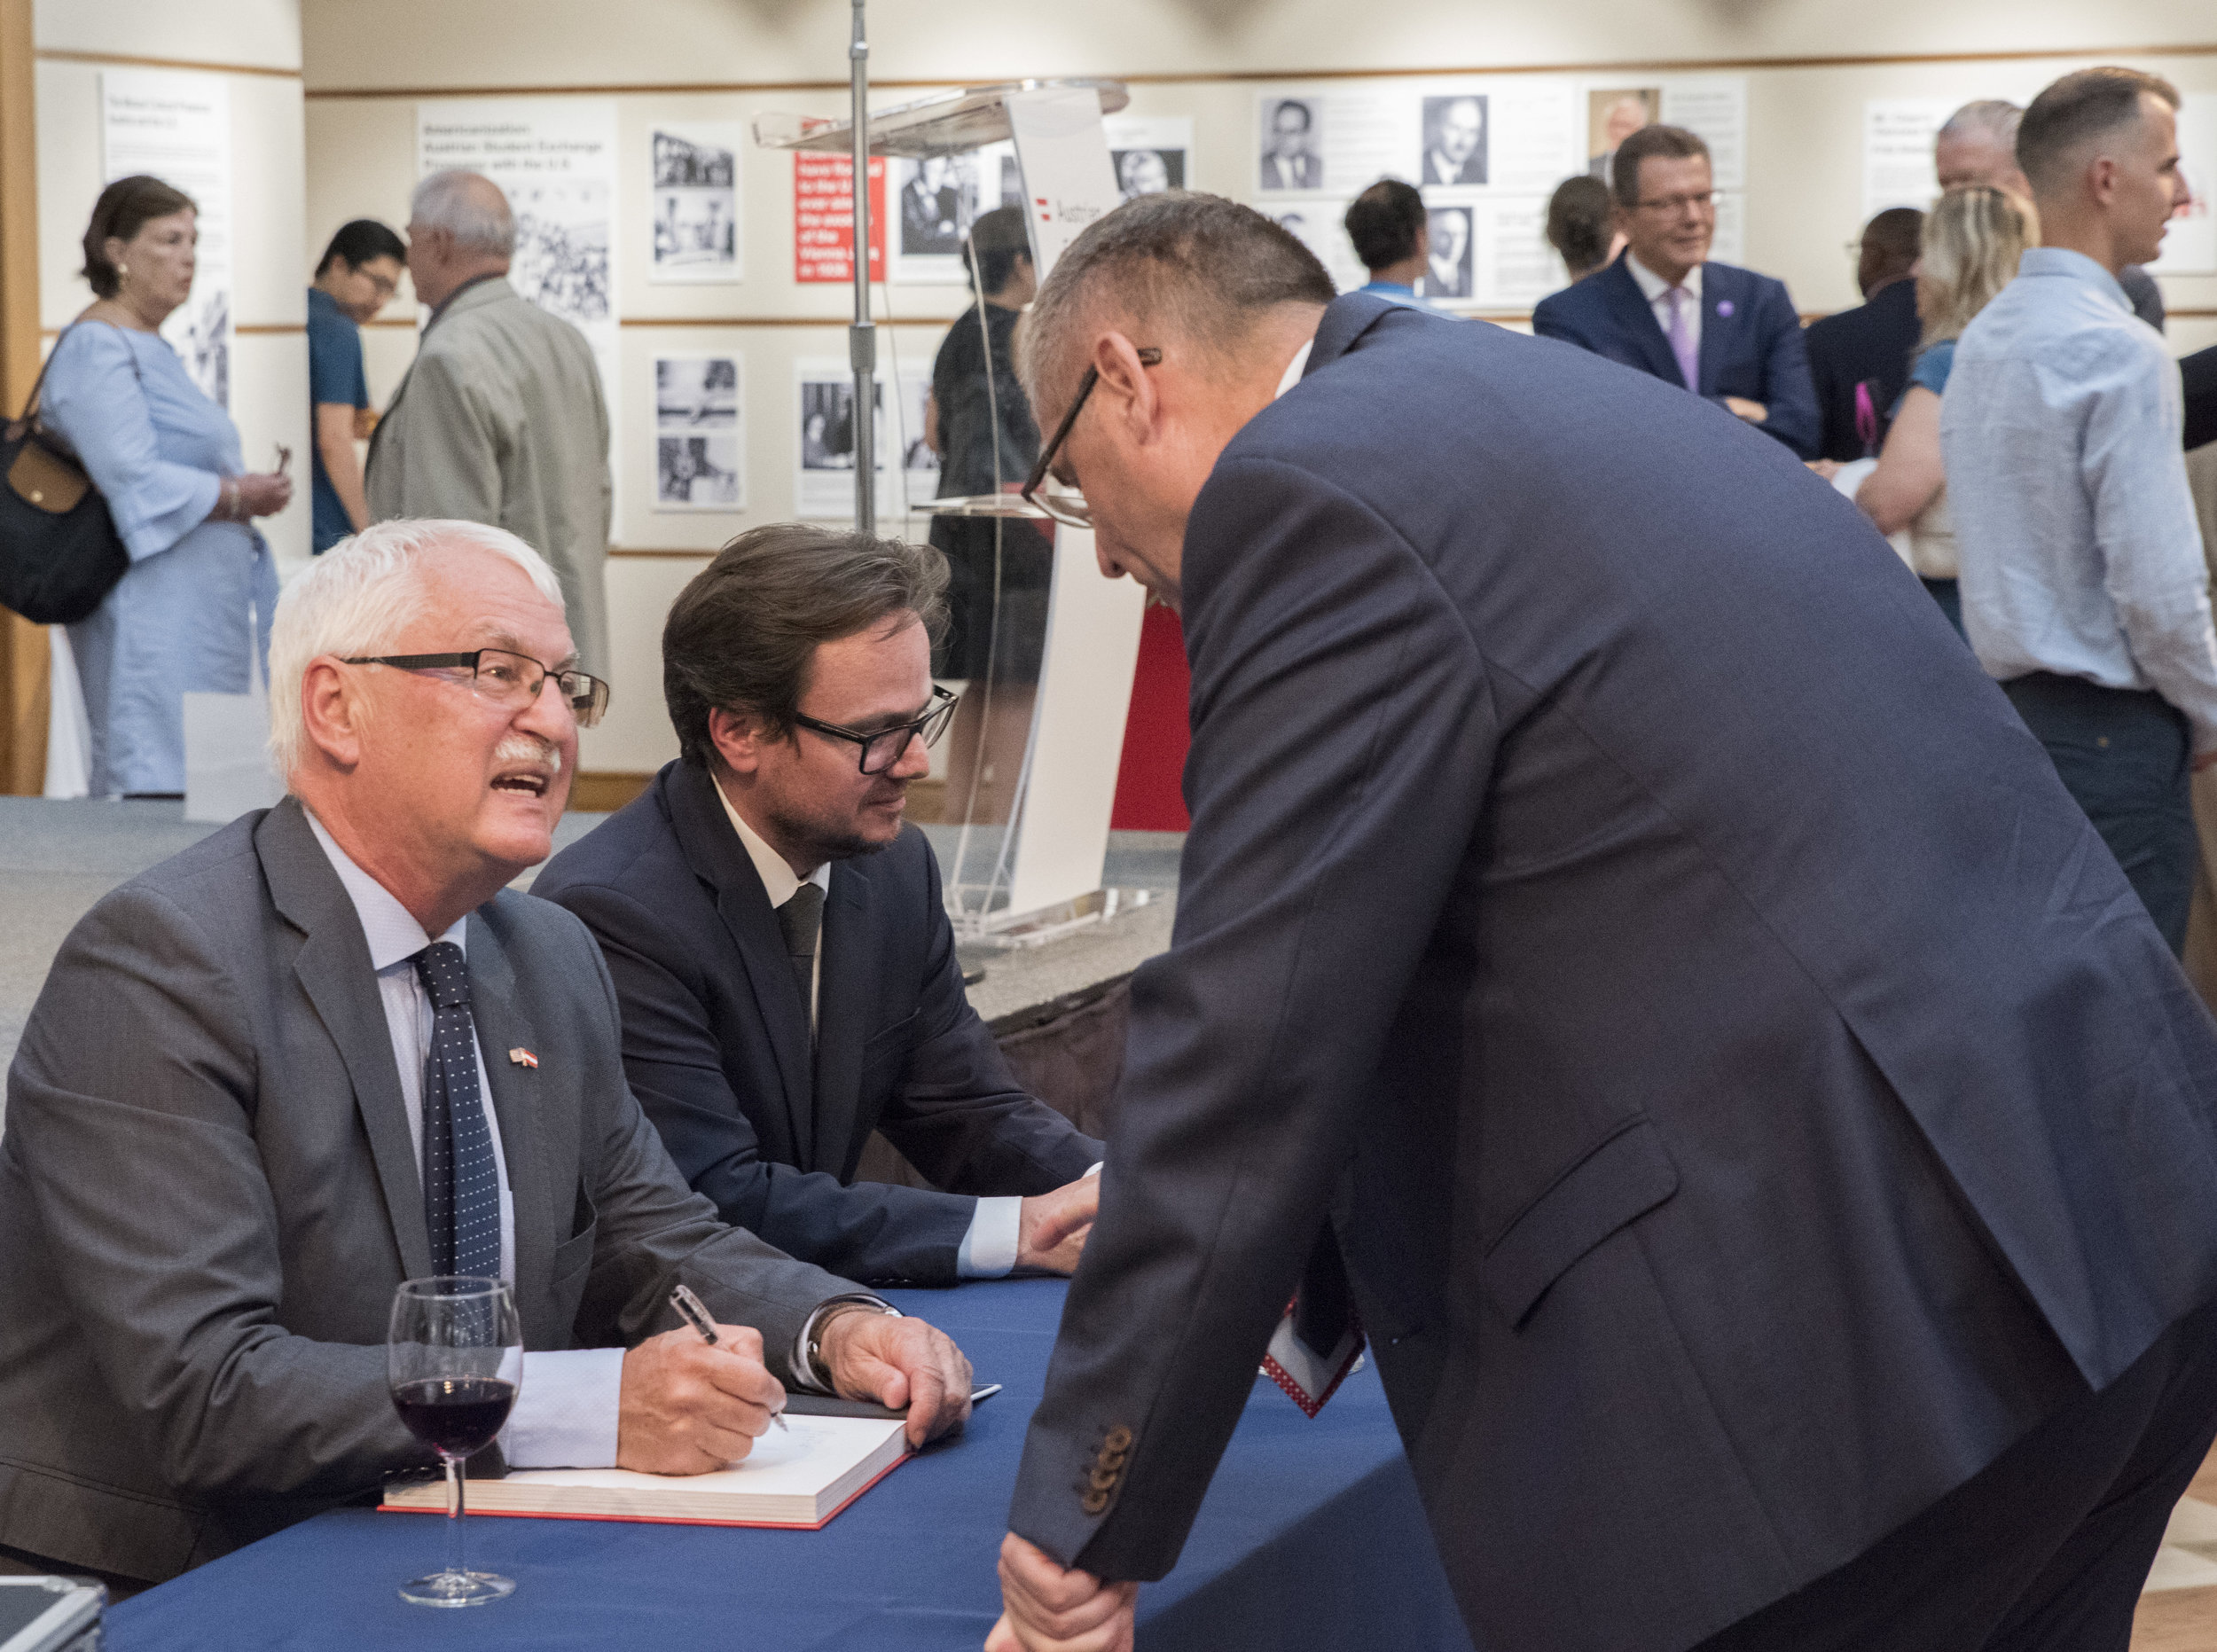 Professor Günter Bischof (left) and co-author Dr. Hannes Richter sign books for guests.   Photo: Lenore Boulet